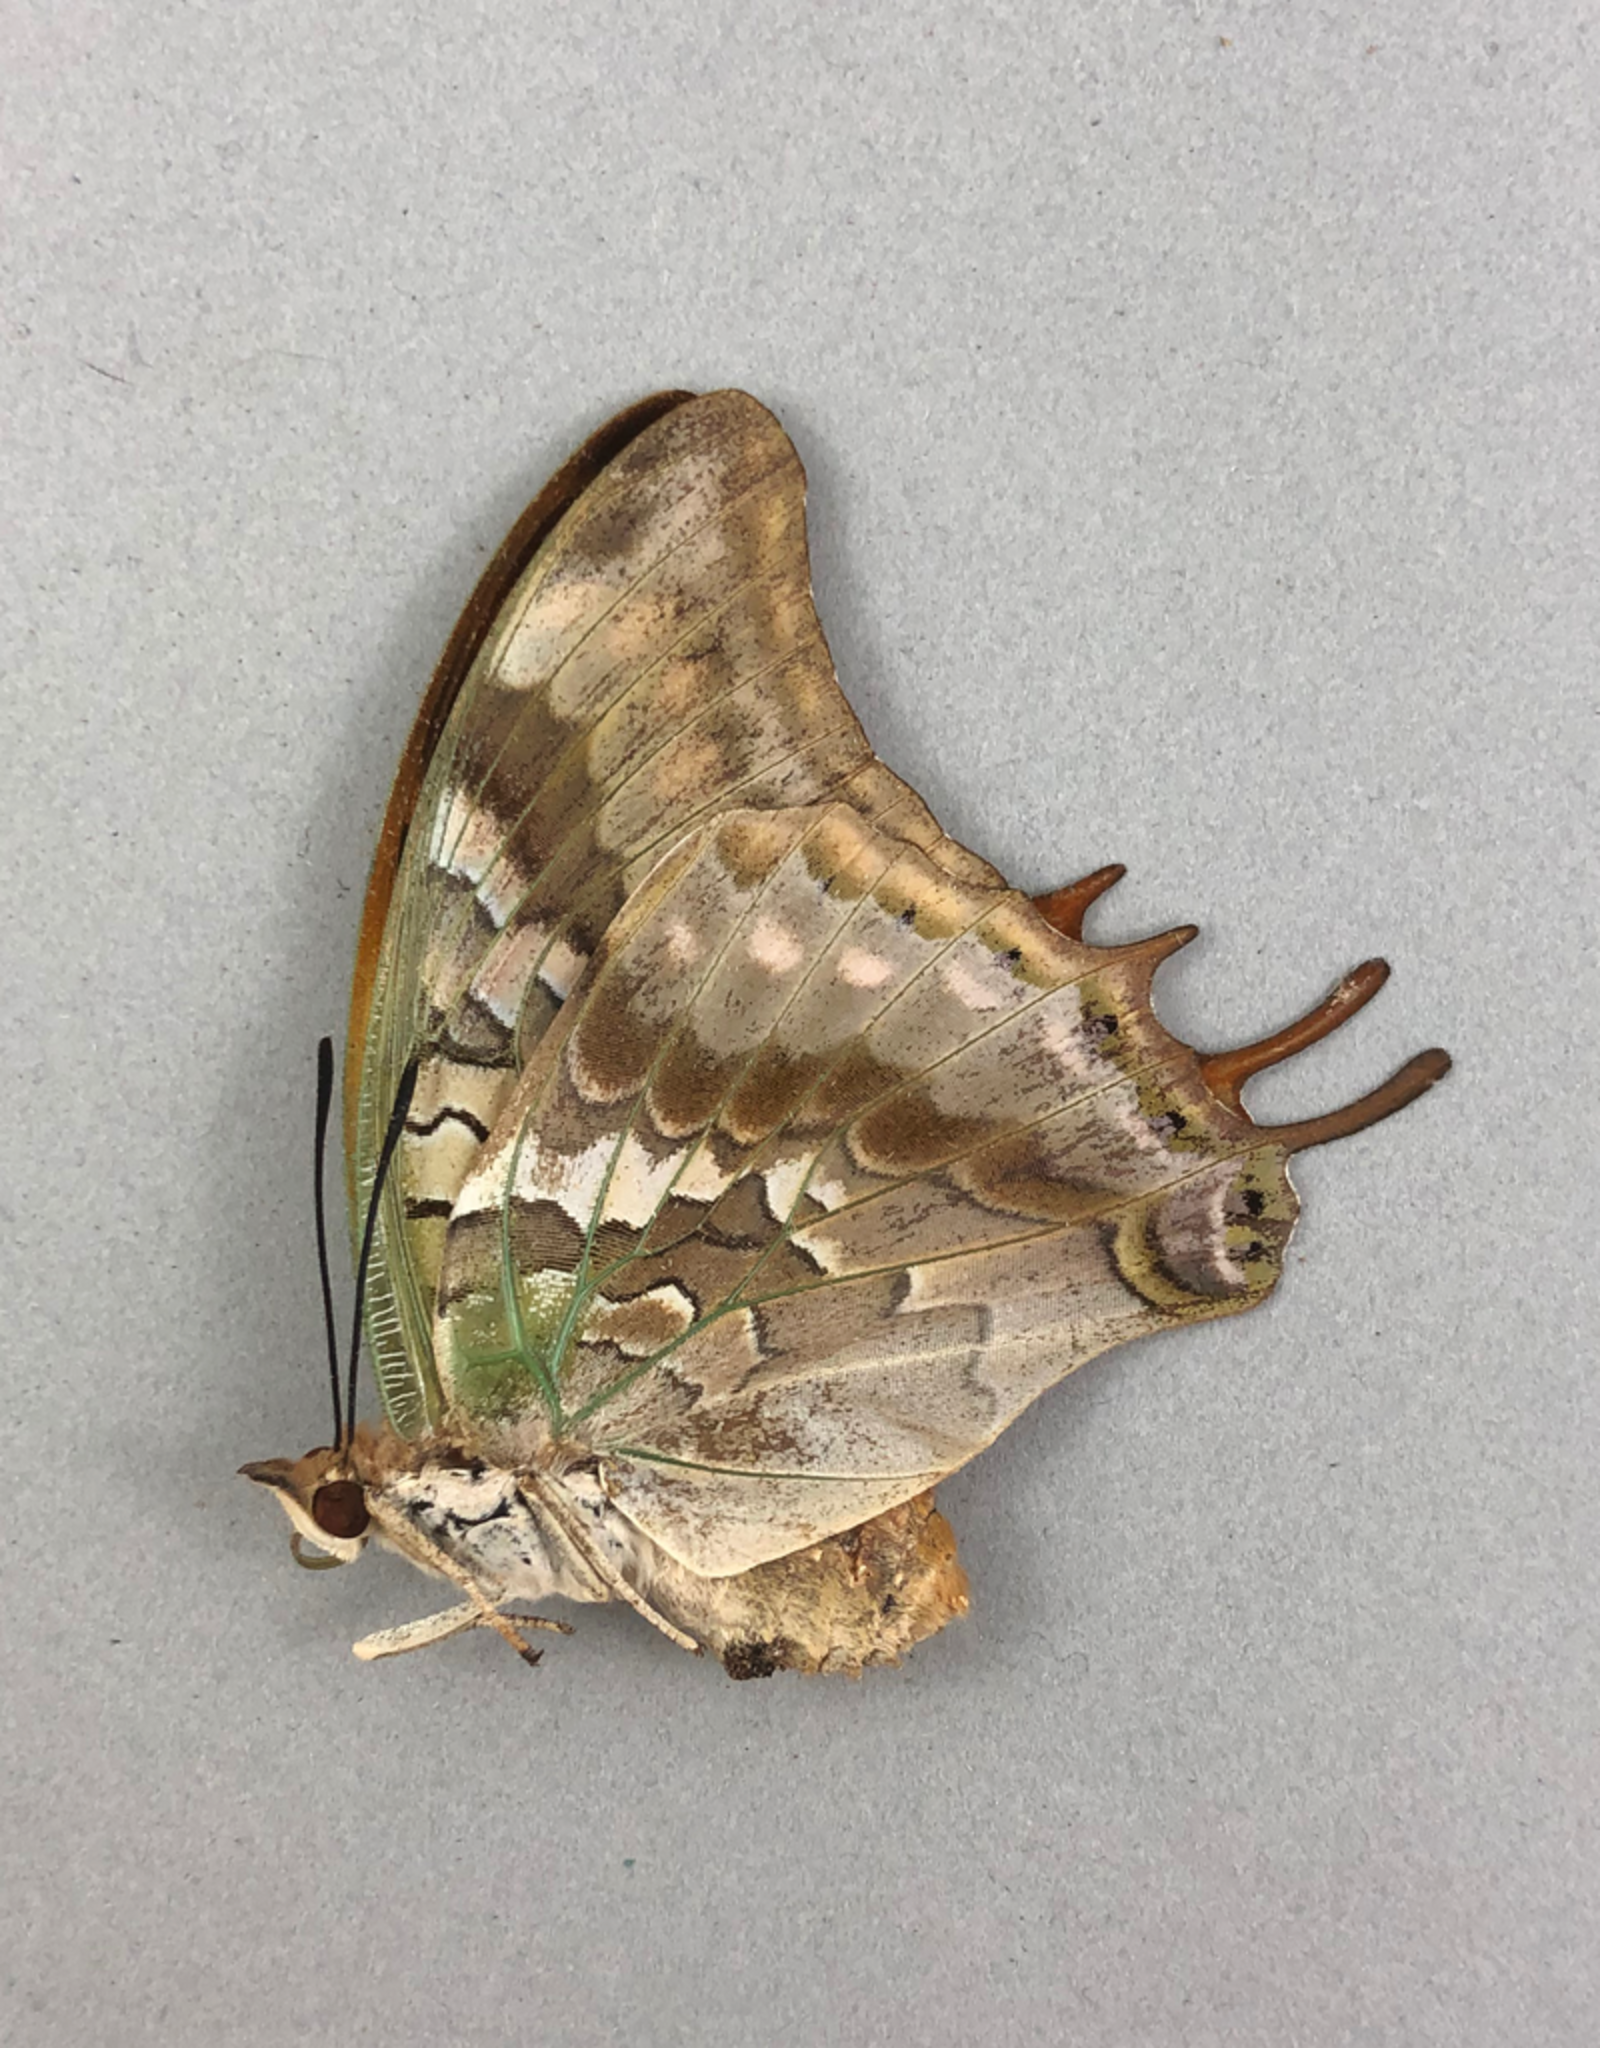 Charaxes candiope F A1 CAR